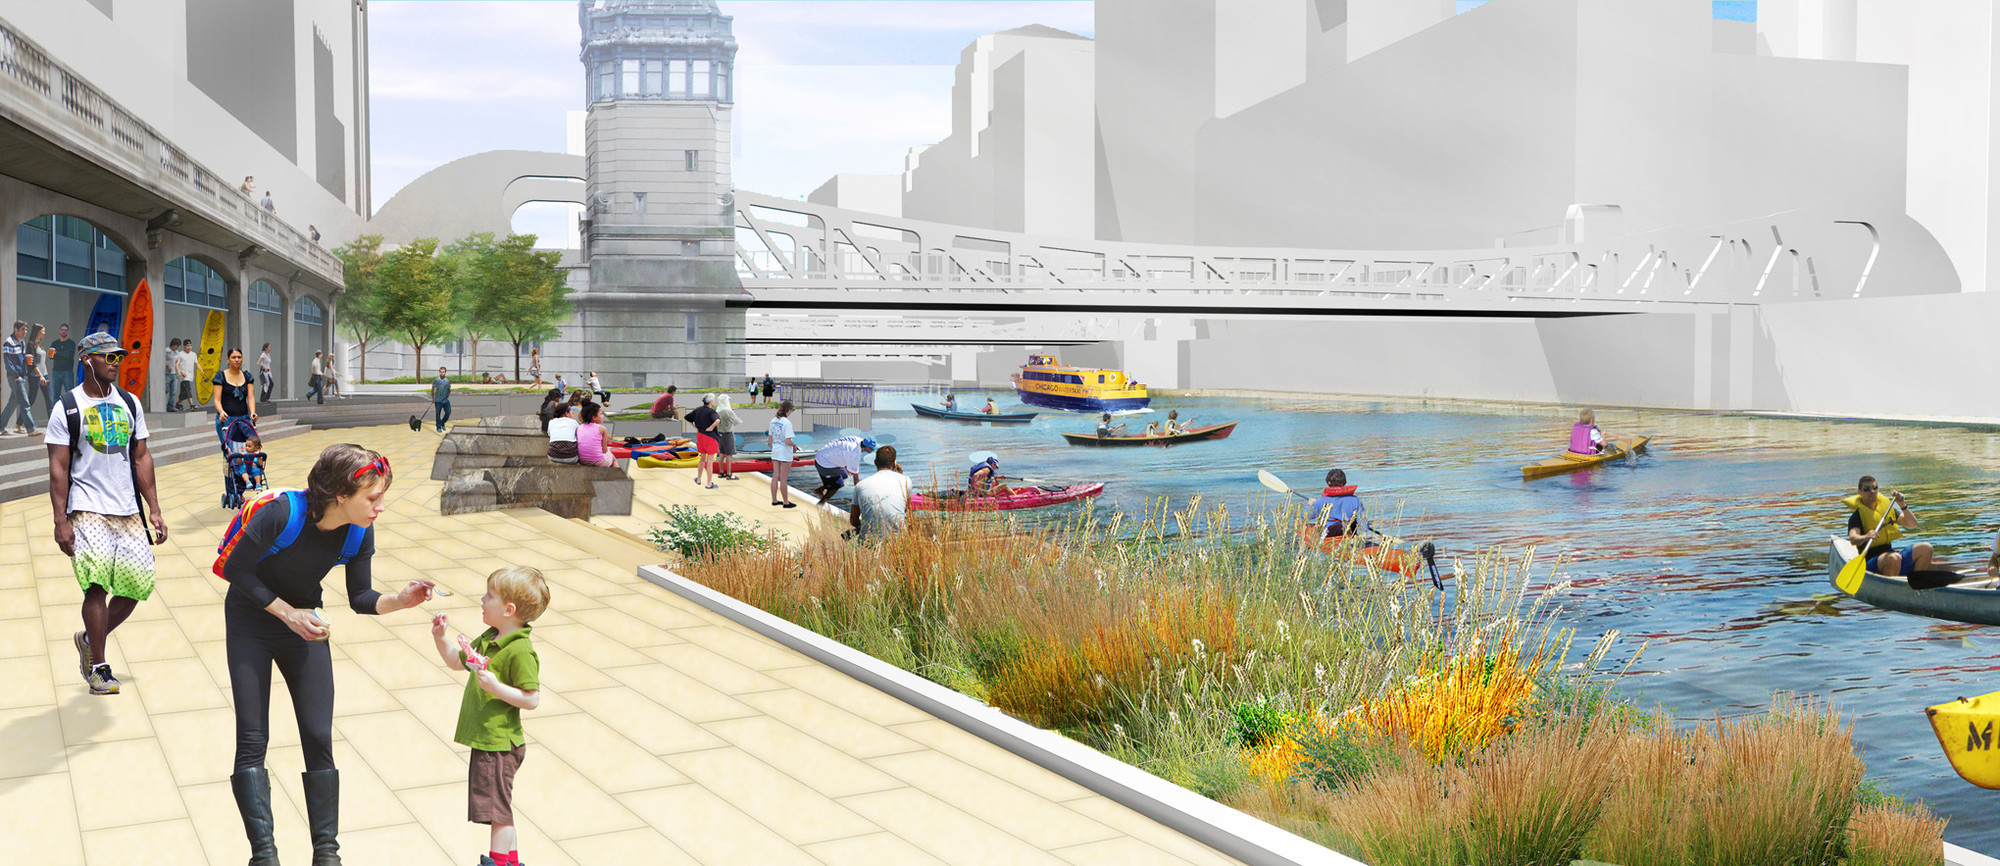 Reclaiming Rivers: The Latest Trend in Urban Design